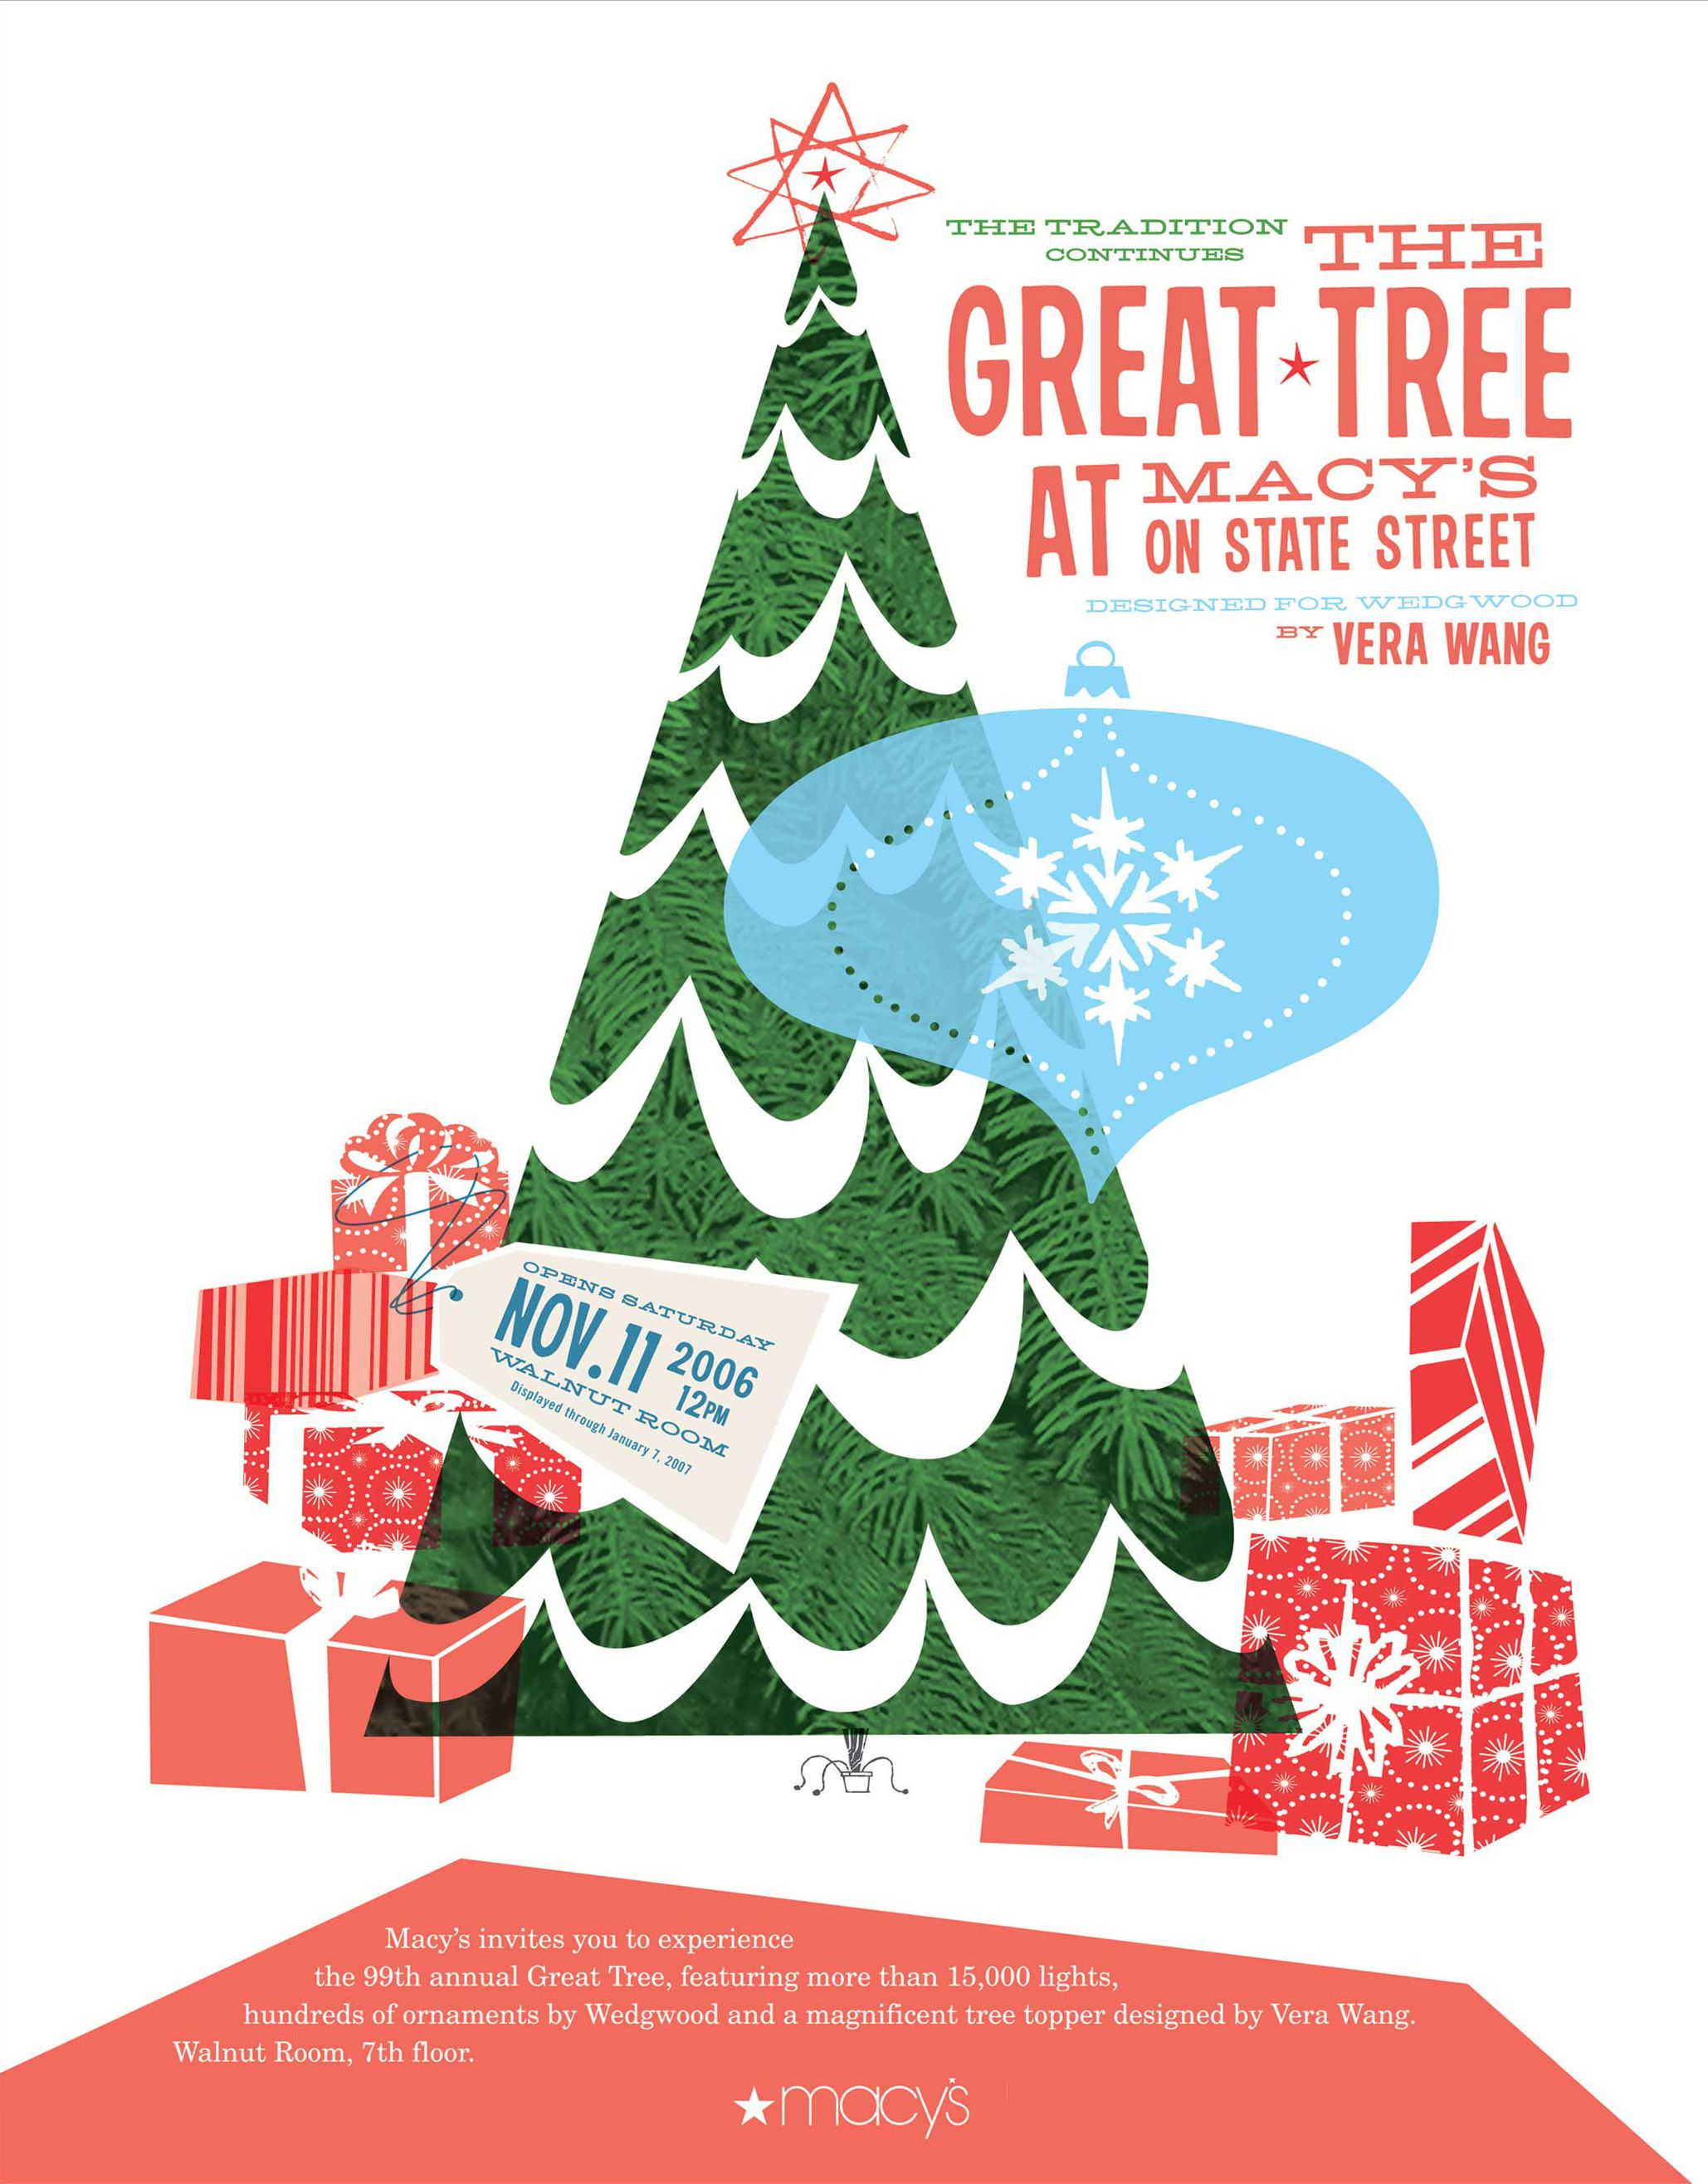 macy s great tree poster holiday the old graphics macy s 2006 1500 paper dolls christmas gifts artist arielle gabriels the international paper doll society also paper dolls the adventures